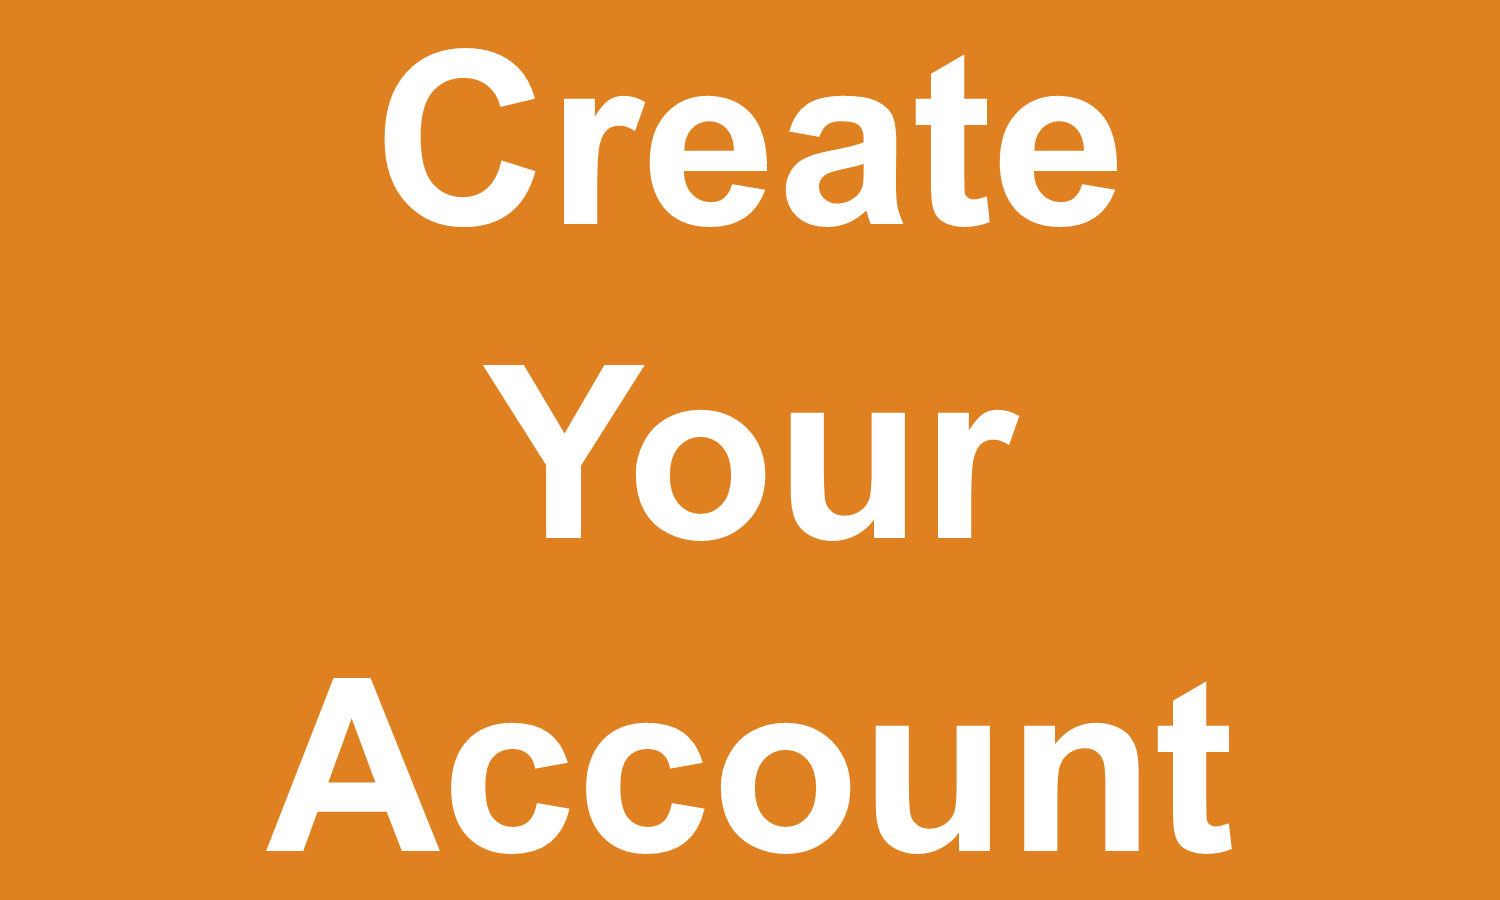 create-account-portal-buttons-2022.png